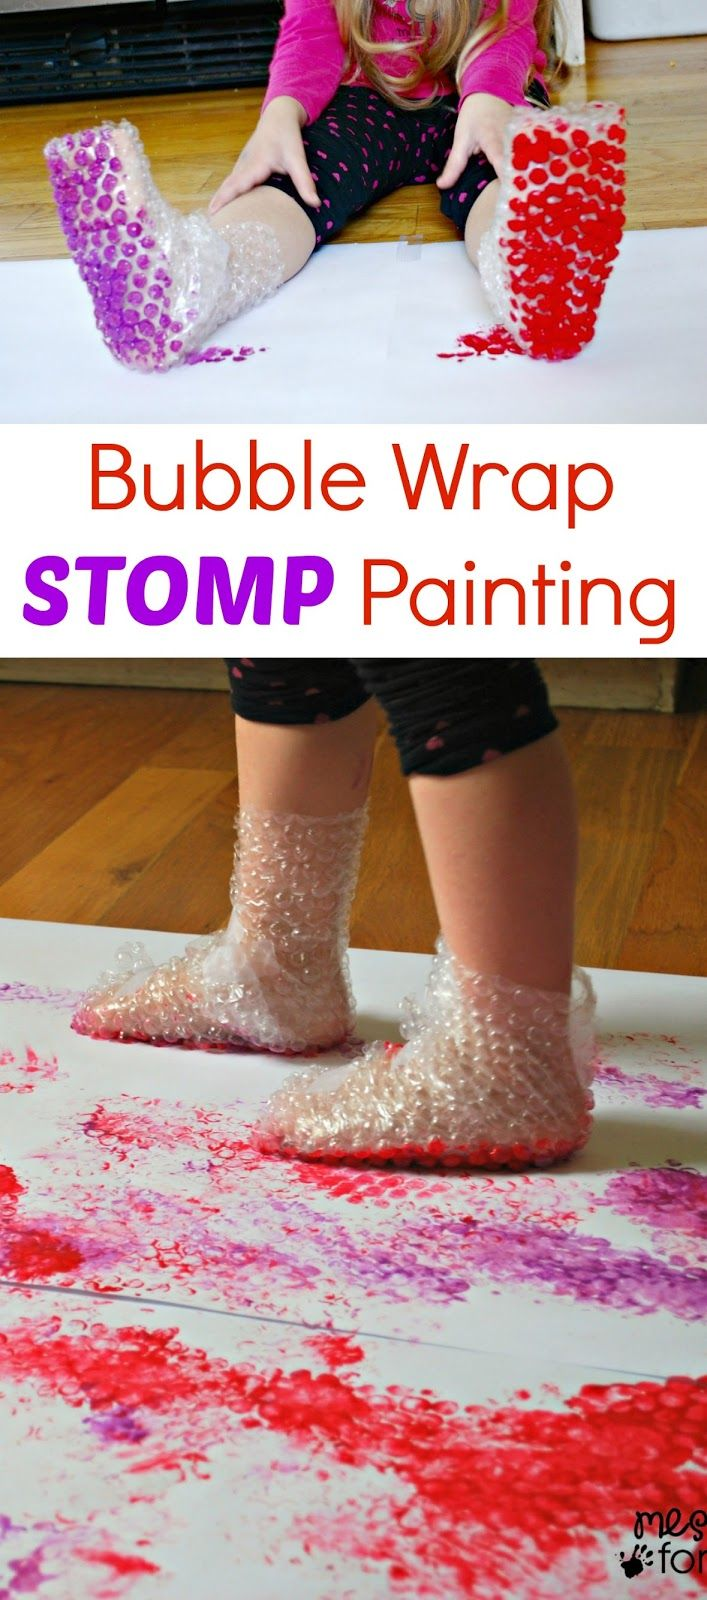 #Bubble #wrap stomp #painting is a great way to expend the #kids' #energy when they're stuck indoors! Plus, you'll end up with a fabulous canvas to add some #spring #color to your #decor when all's said and done (: #kidactivities